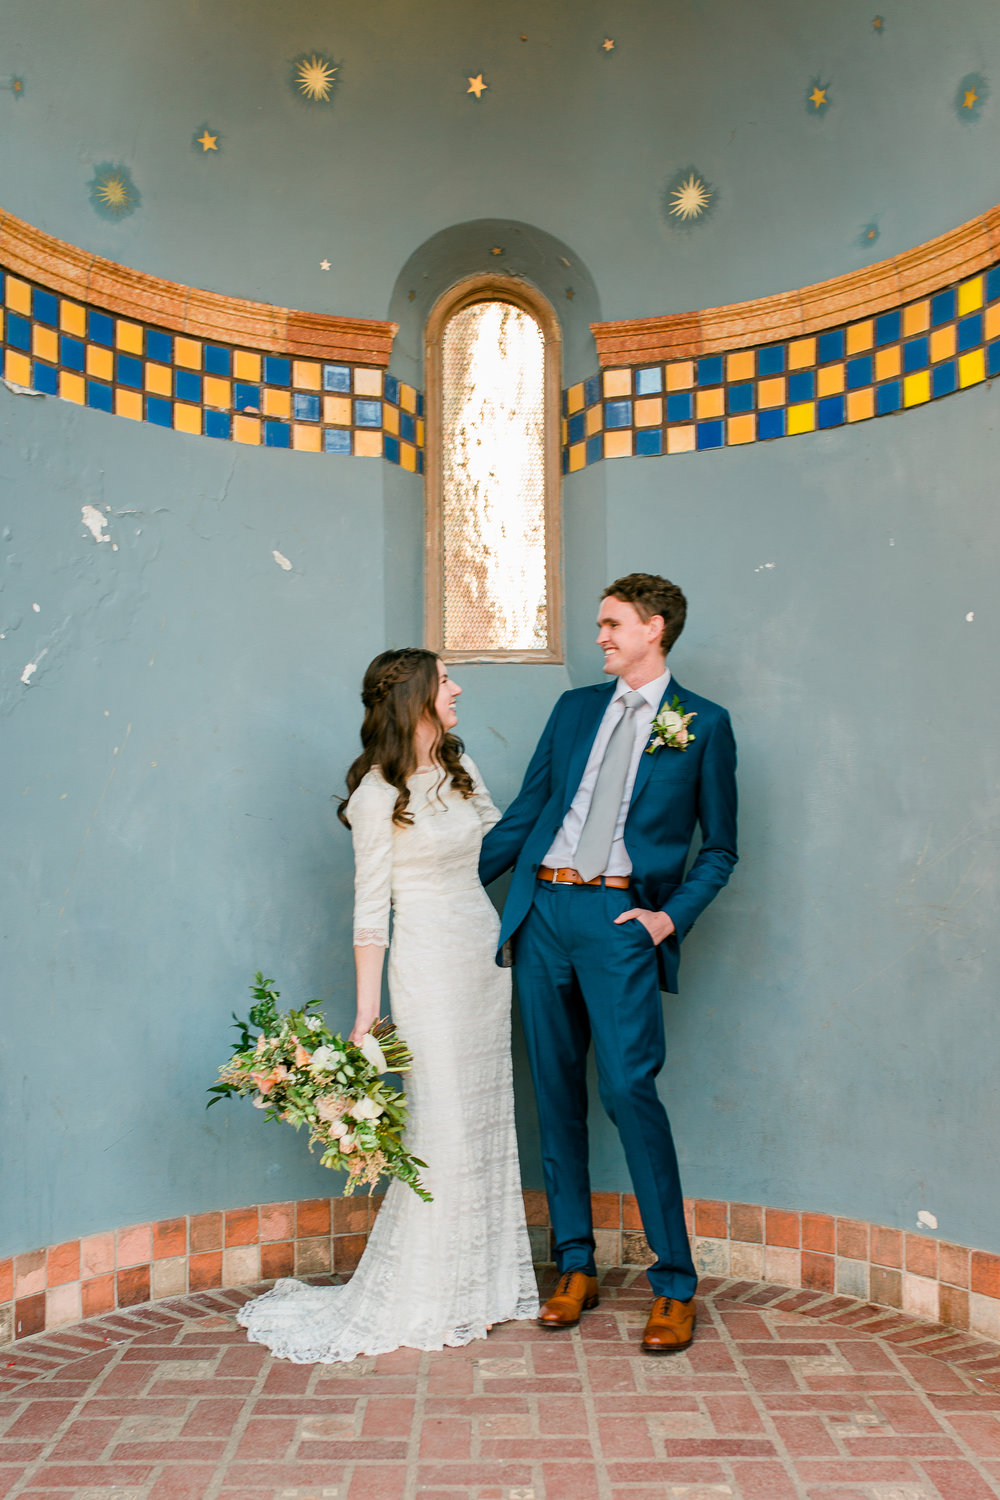 Eliza + Cody Bridals - Utah Wedding Photographer-7.jpg